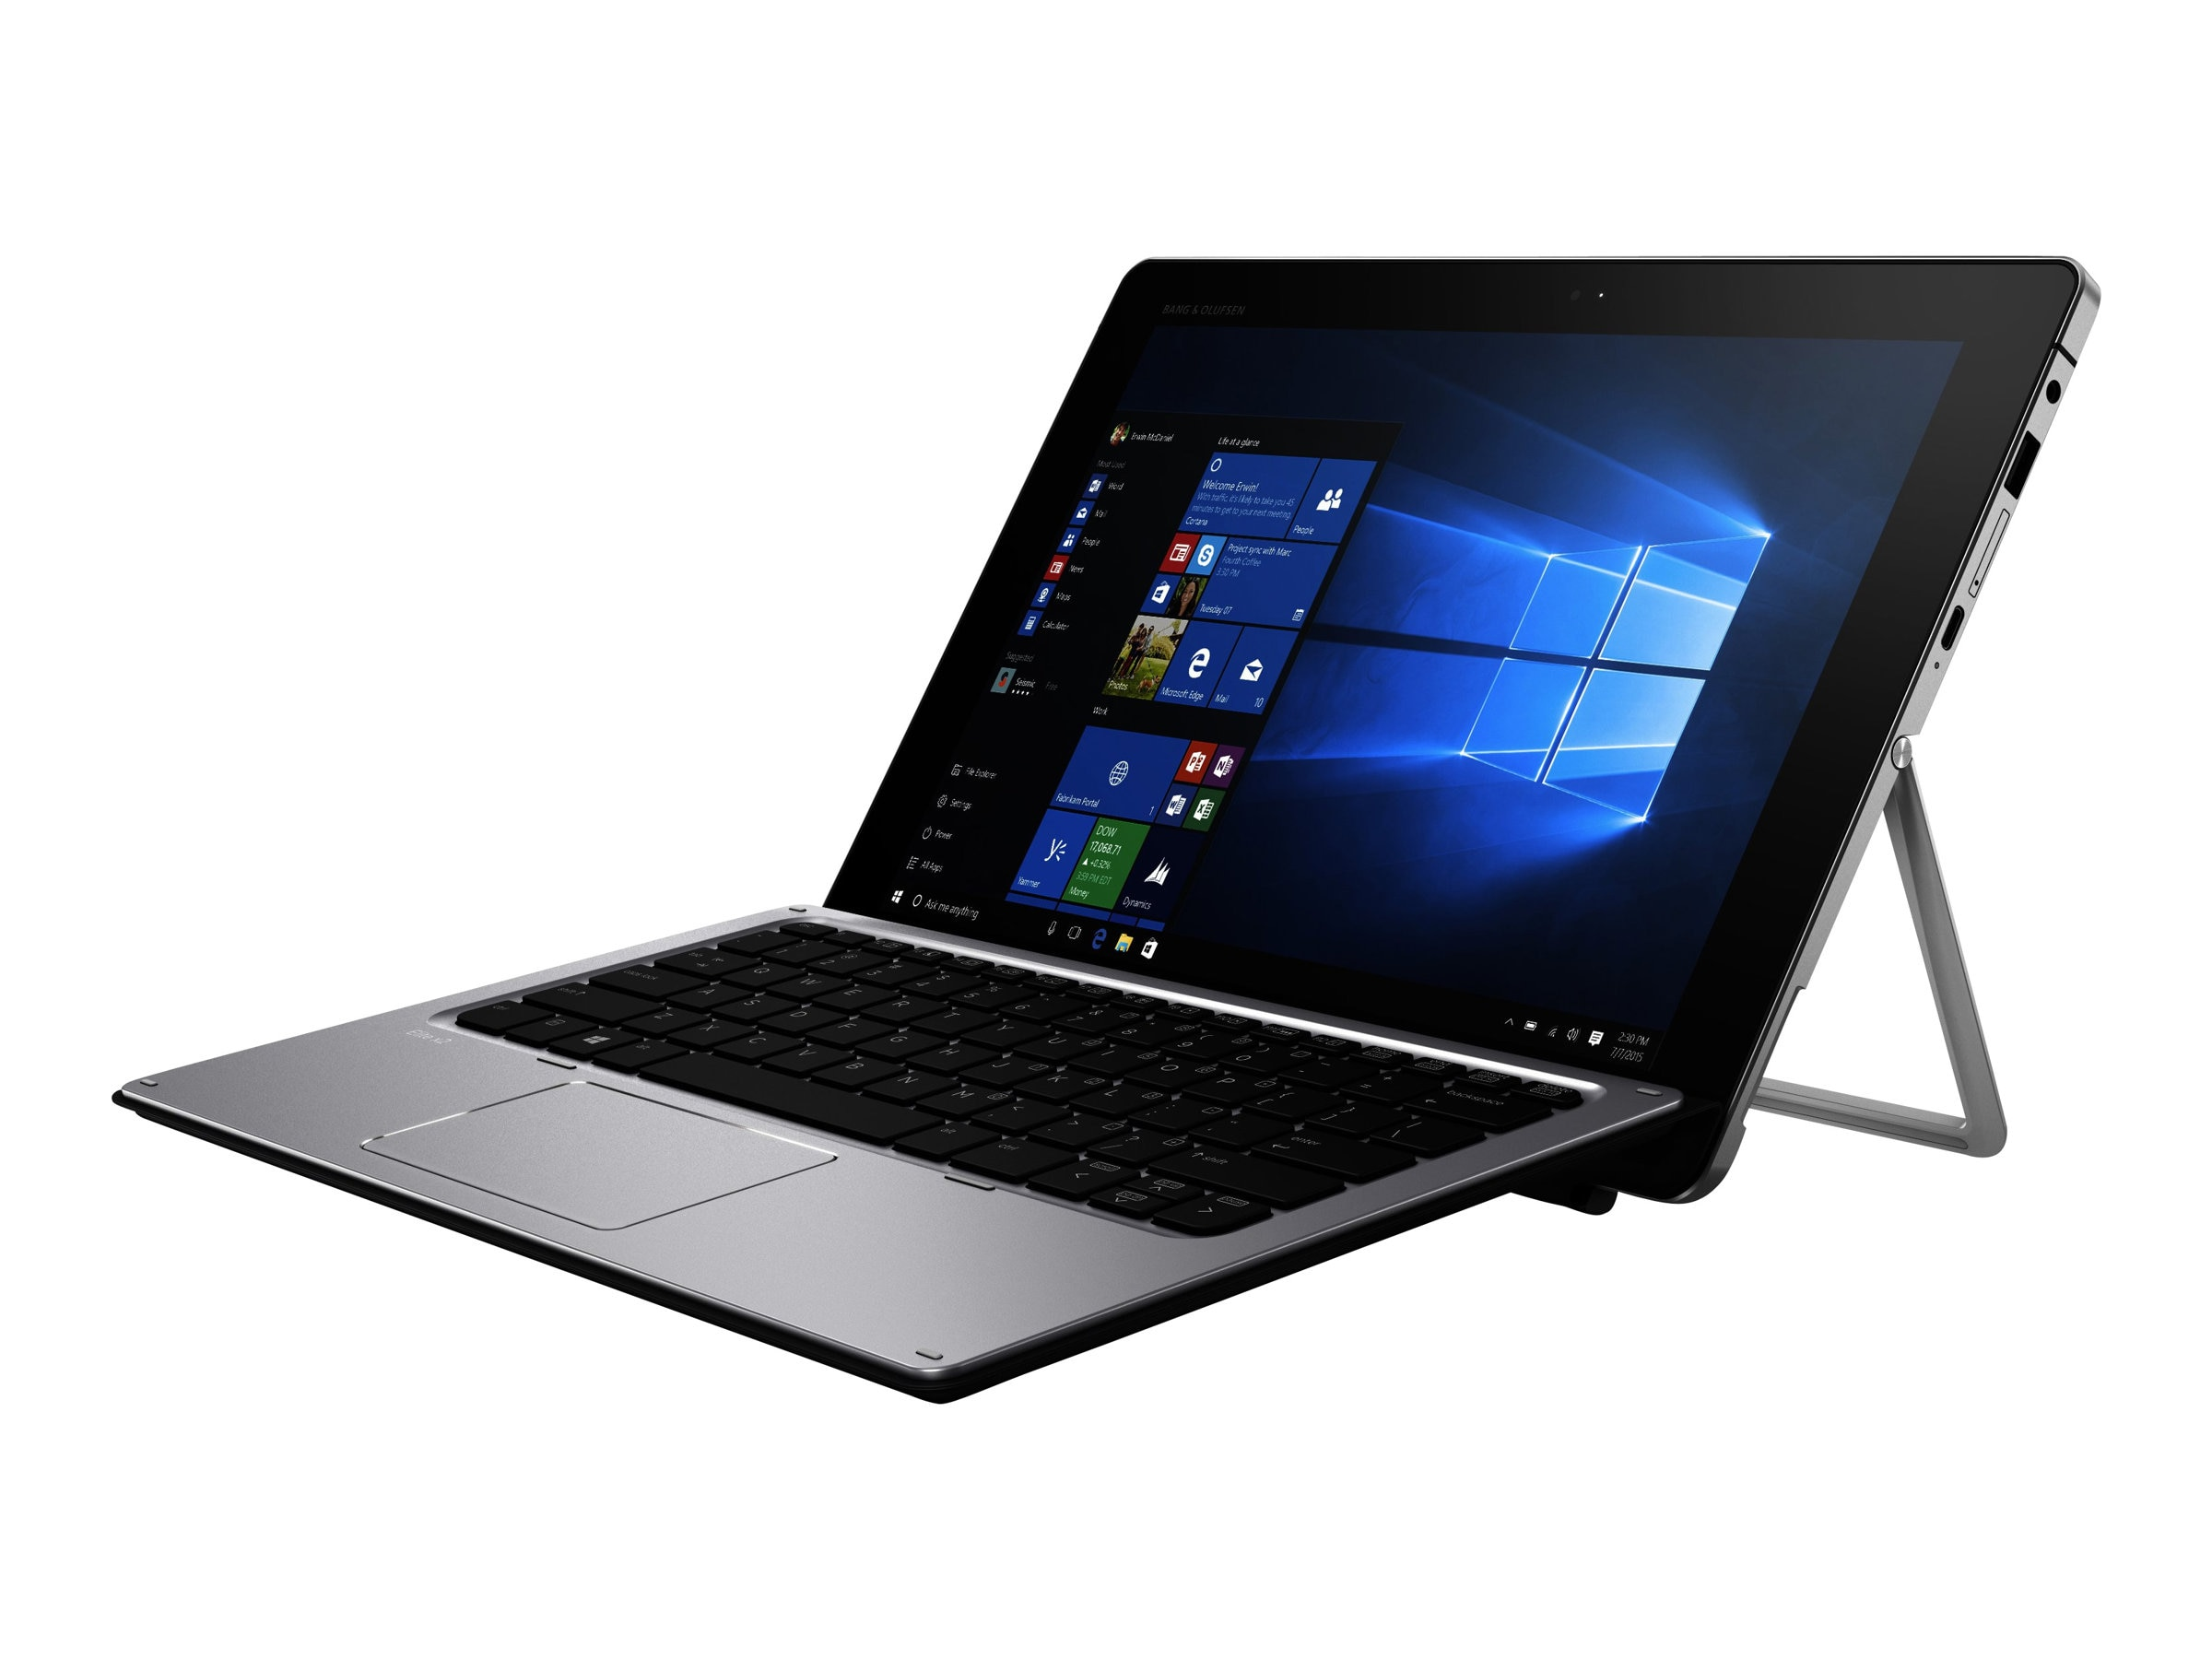 HP Elite x2 1012 1.2GHz processor Windows 10 Pro 64-bit Edition